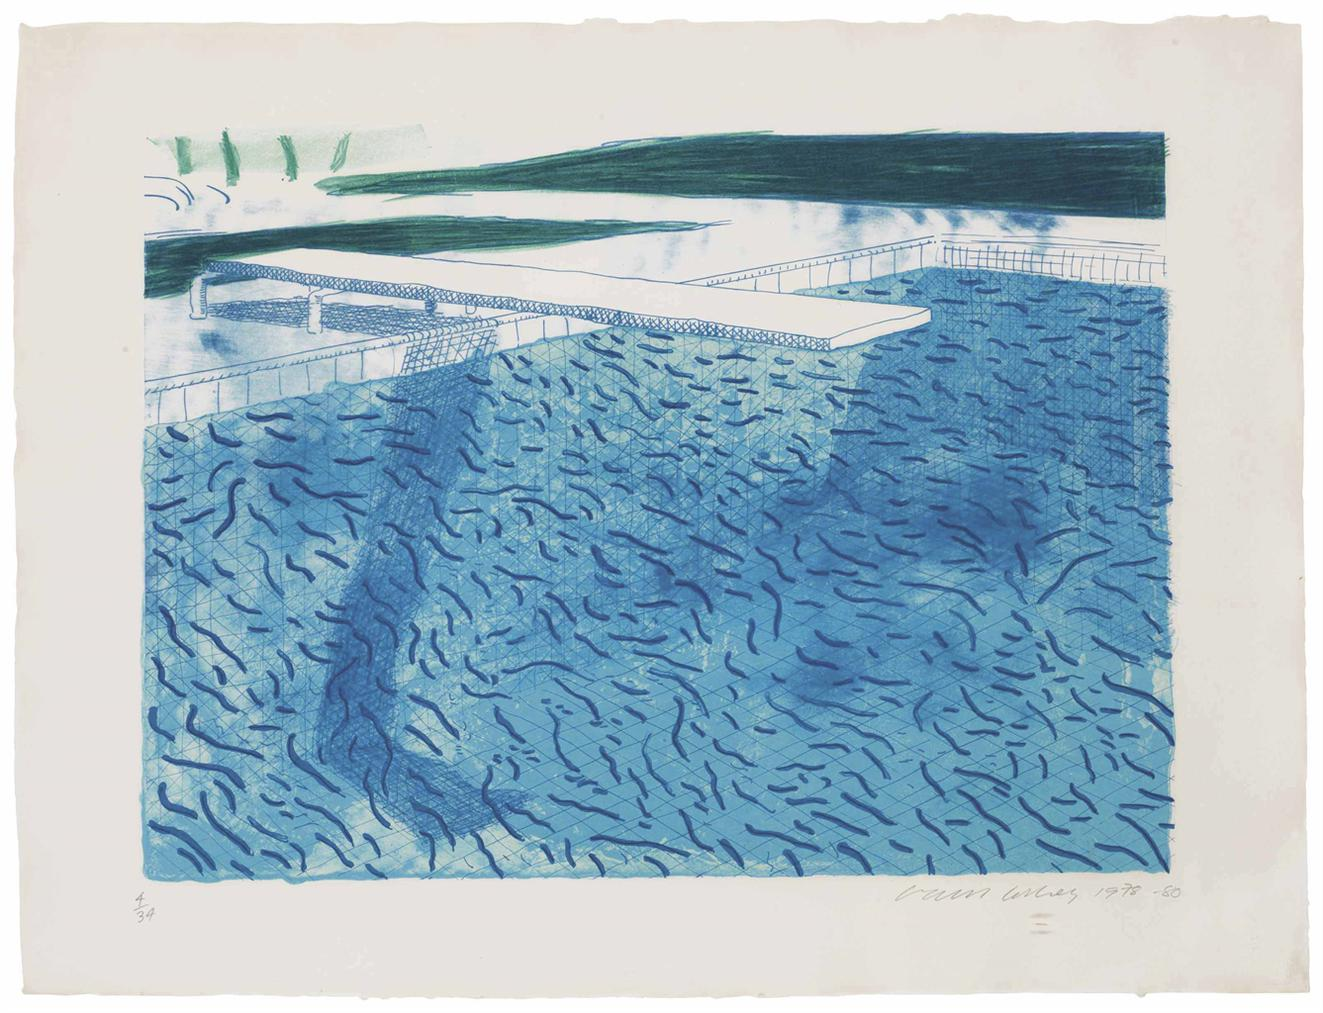 David Hockney-Lithograph Of Water Made Of Thick And Thin Lines And A Light Blue And A Dark Blue Wash-1980